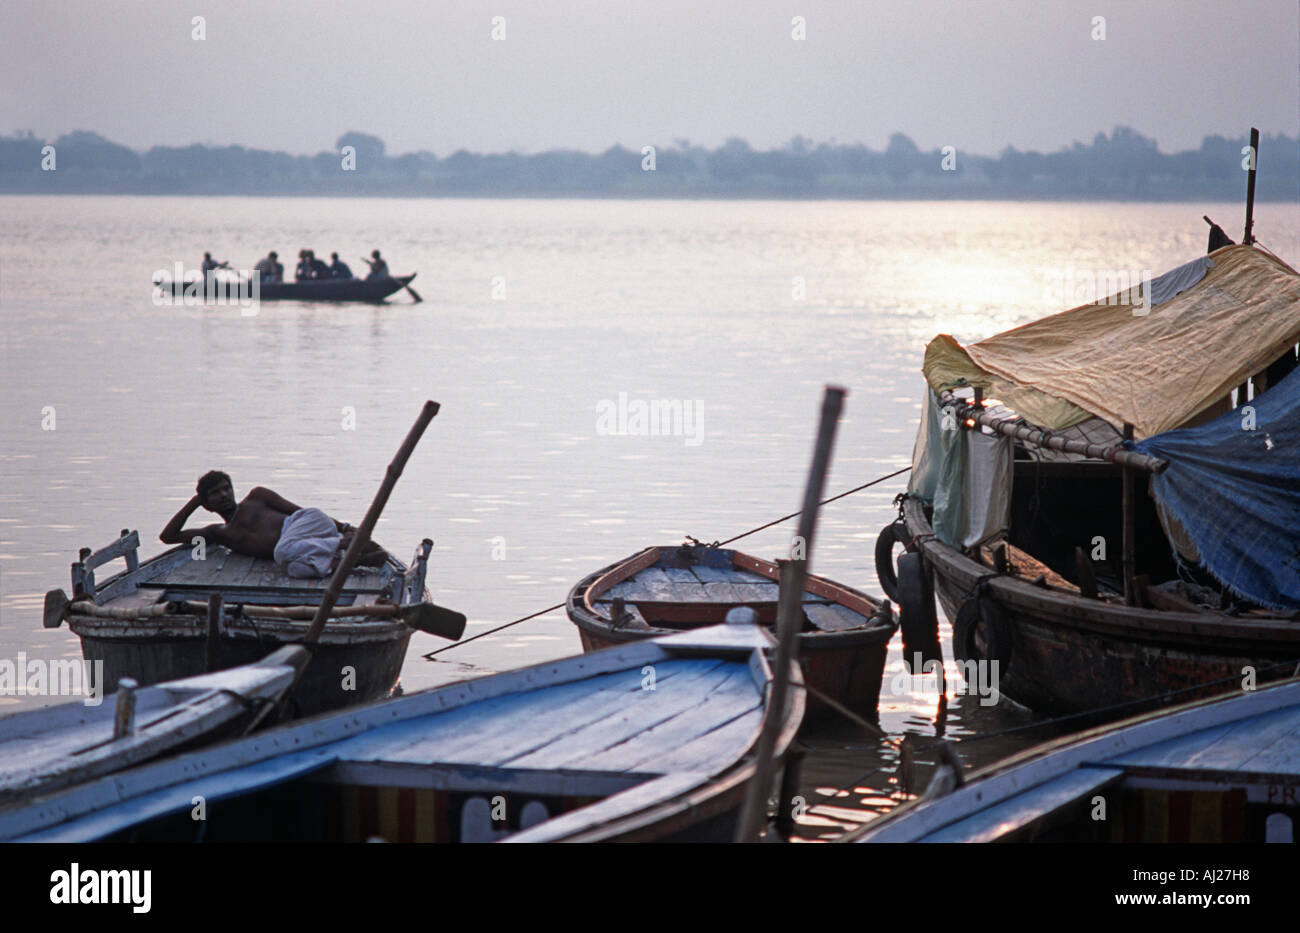 Early morning scene A boatman relaxing on his boat at dawn Silhouetted shapes at dawn The Ganges at Varanasi Uttar Pradesh India - Stock Image